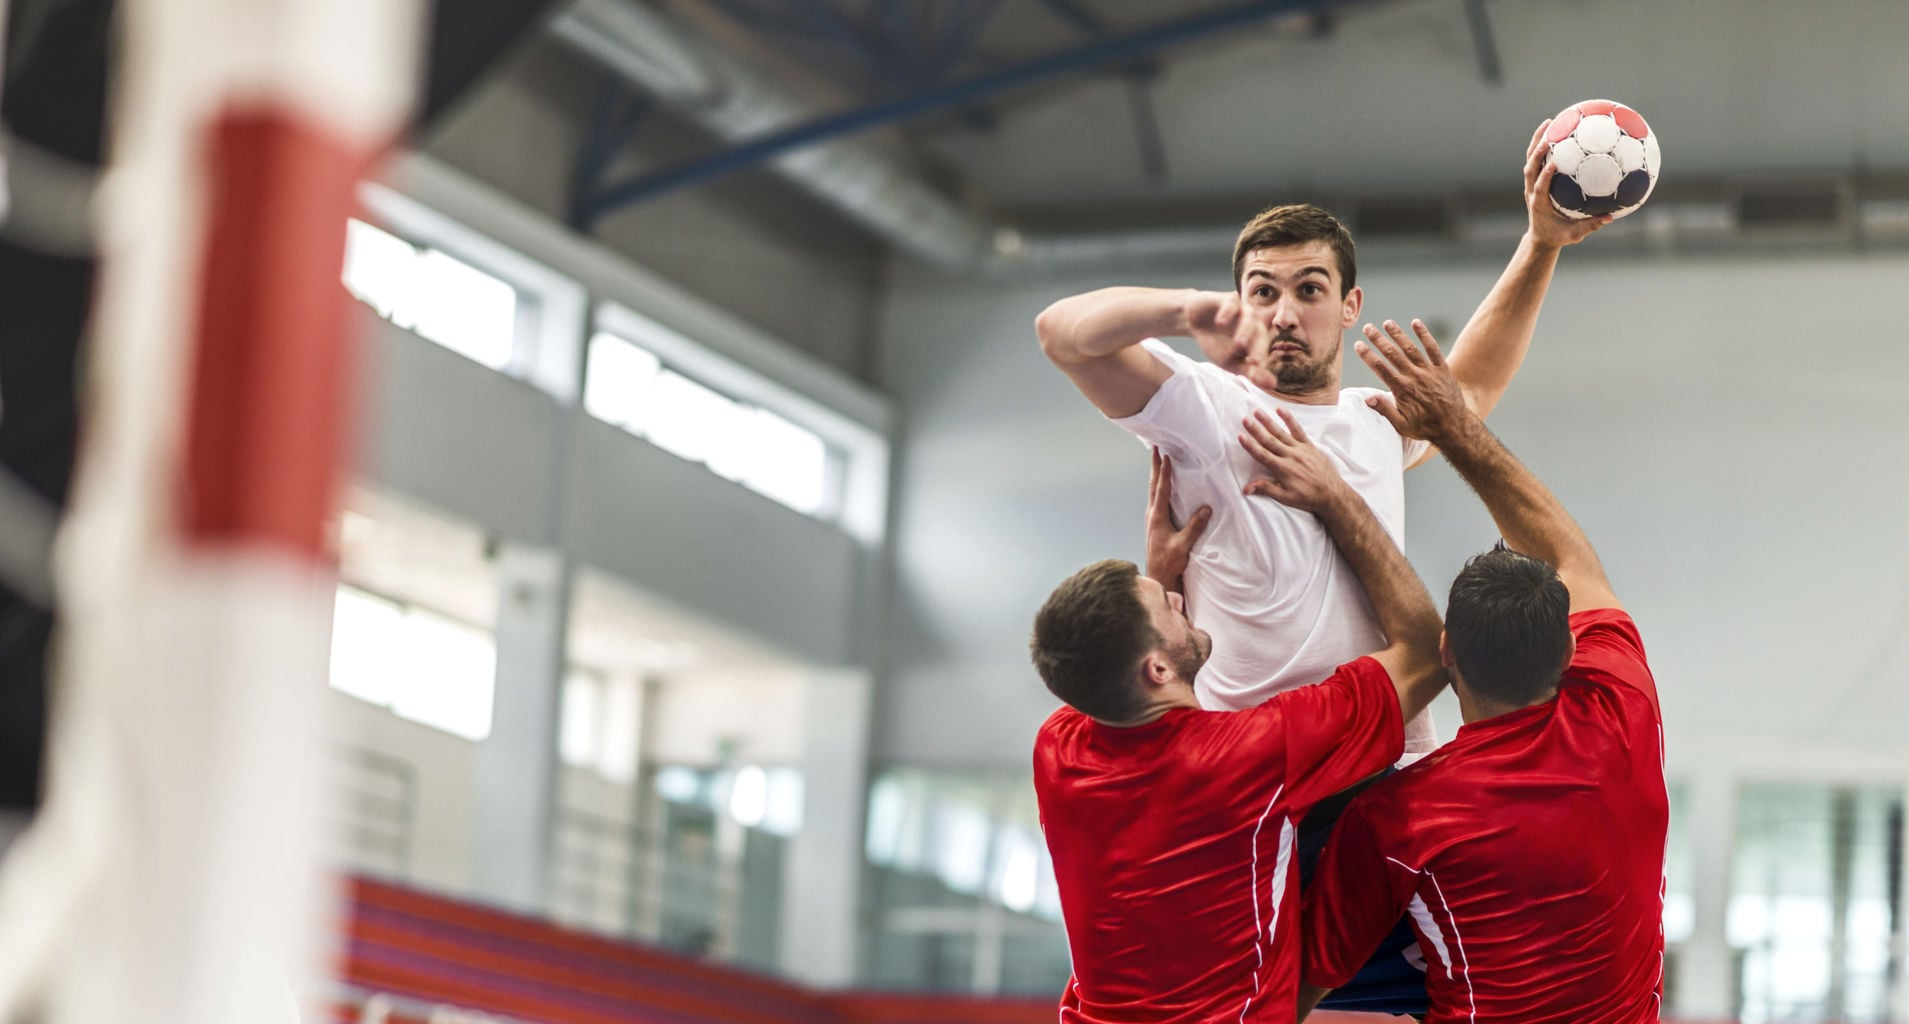 US Ivry Handball — Tremblay en France Handball